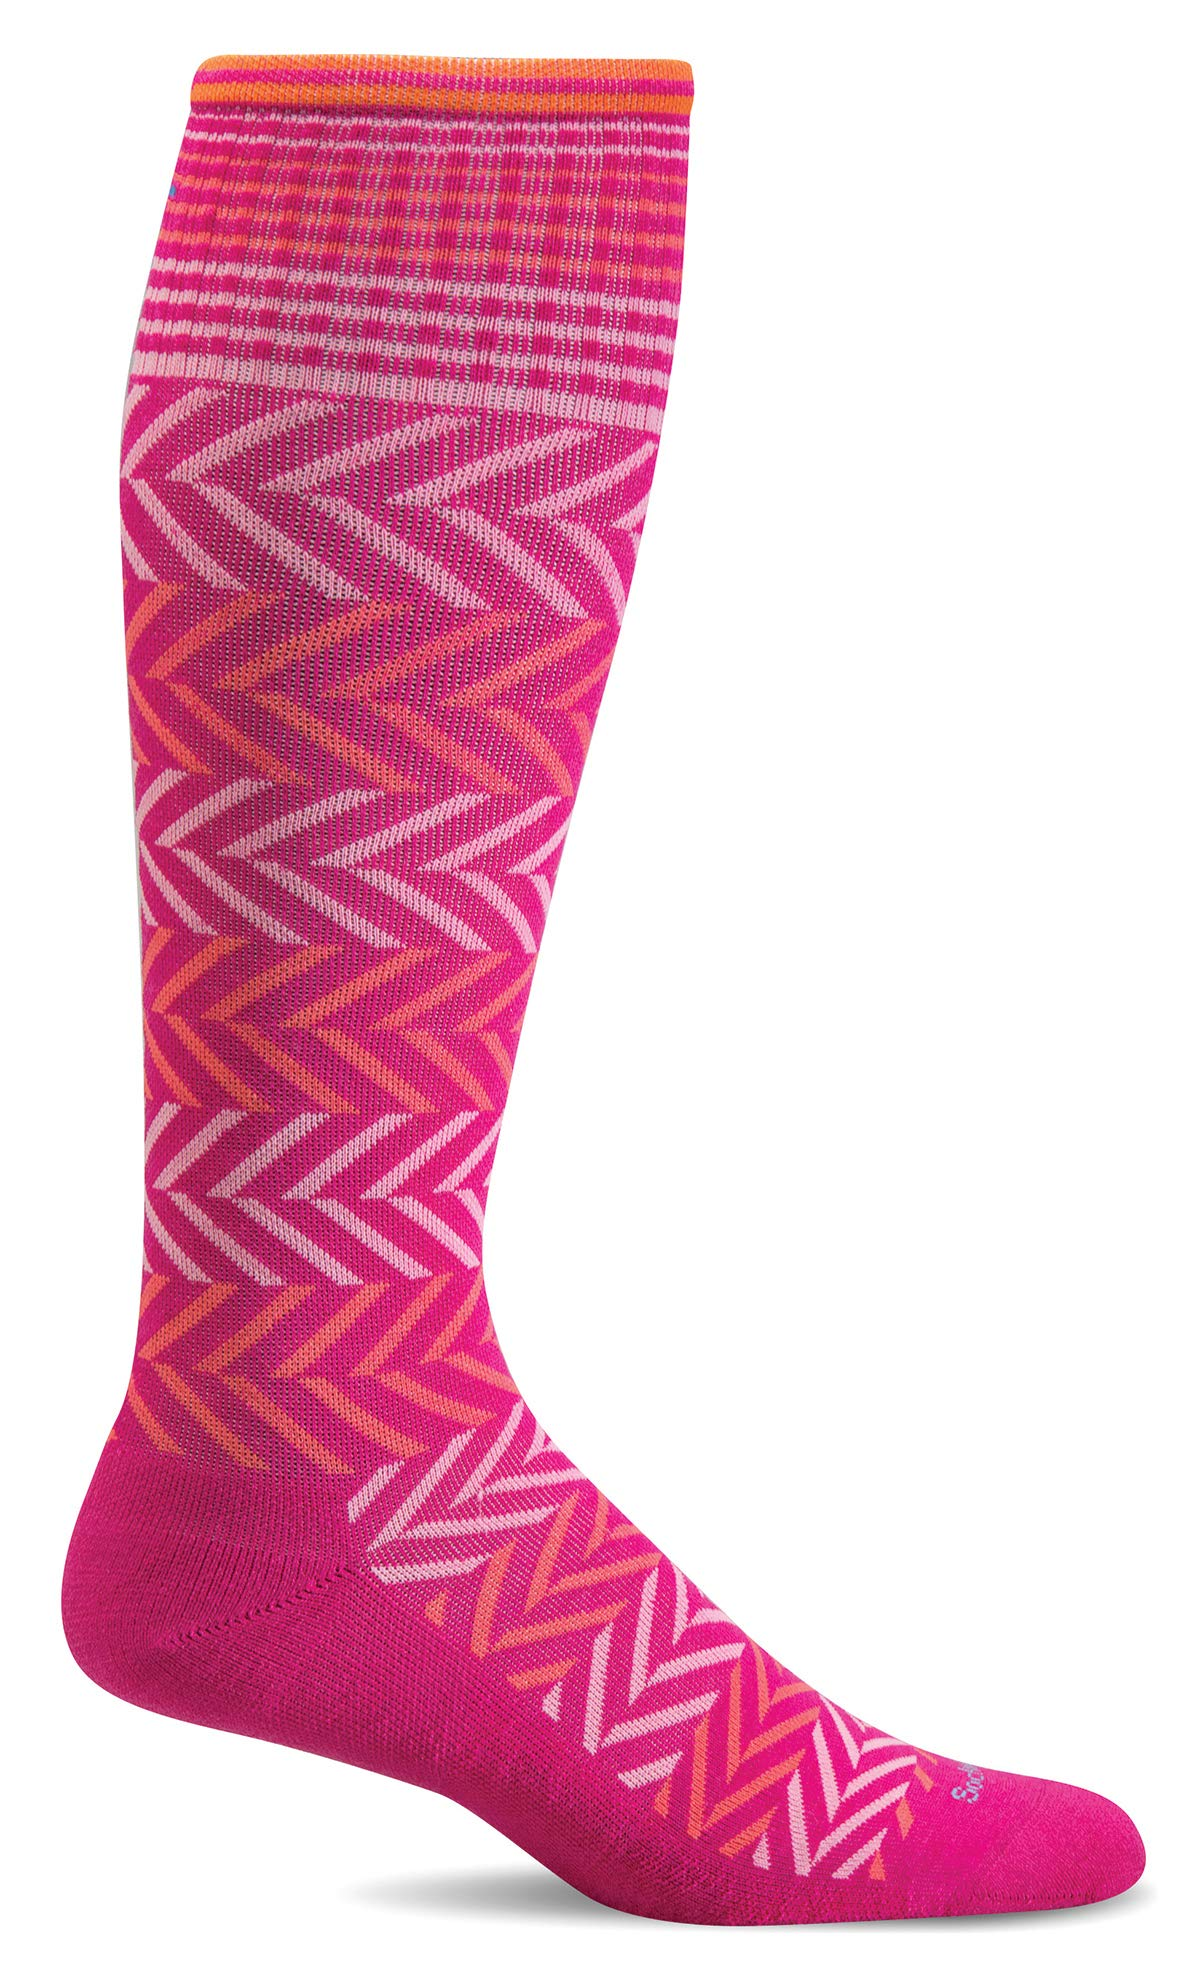 Sockwell Women's Chevron Graduated Compression Socks, Azalea - Medium/Large by Sockwell